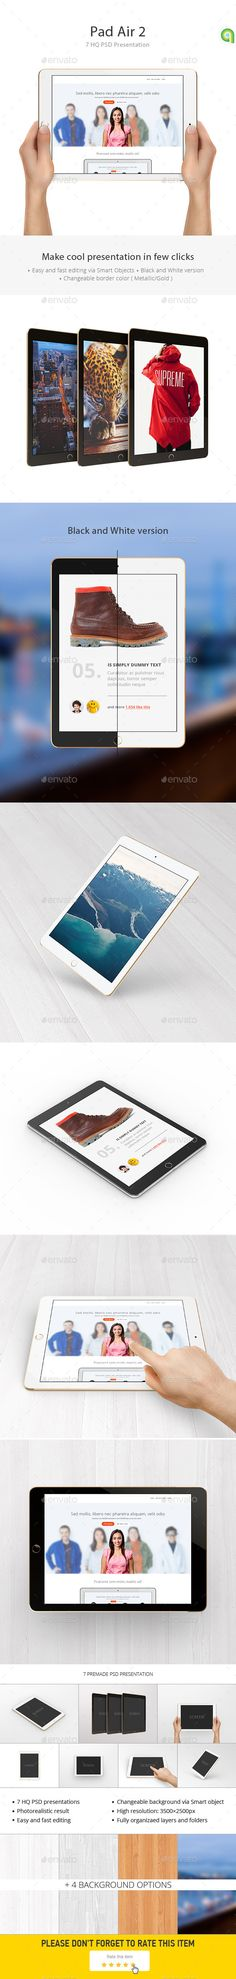 This photorealistic iPad Air 2 Tablet Mockup is great way to showcase your latest app design.